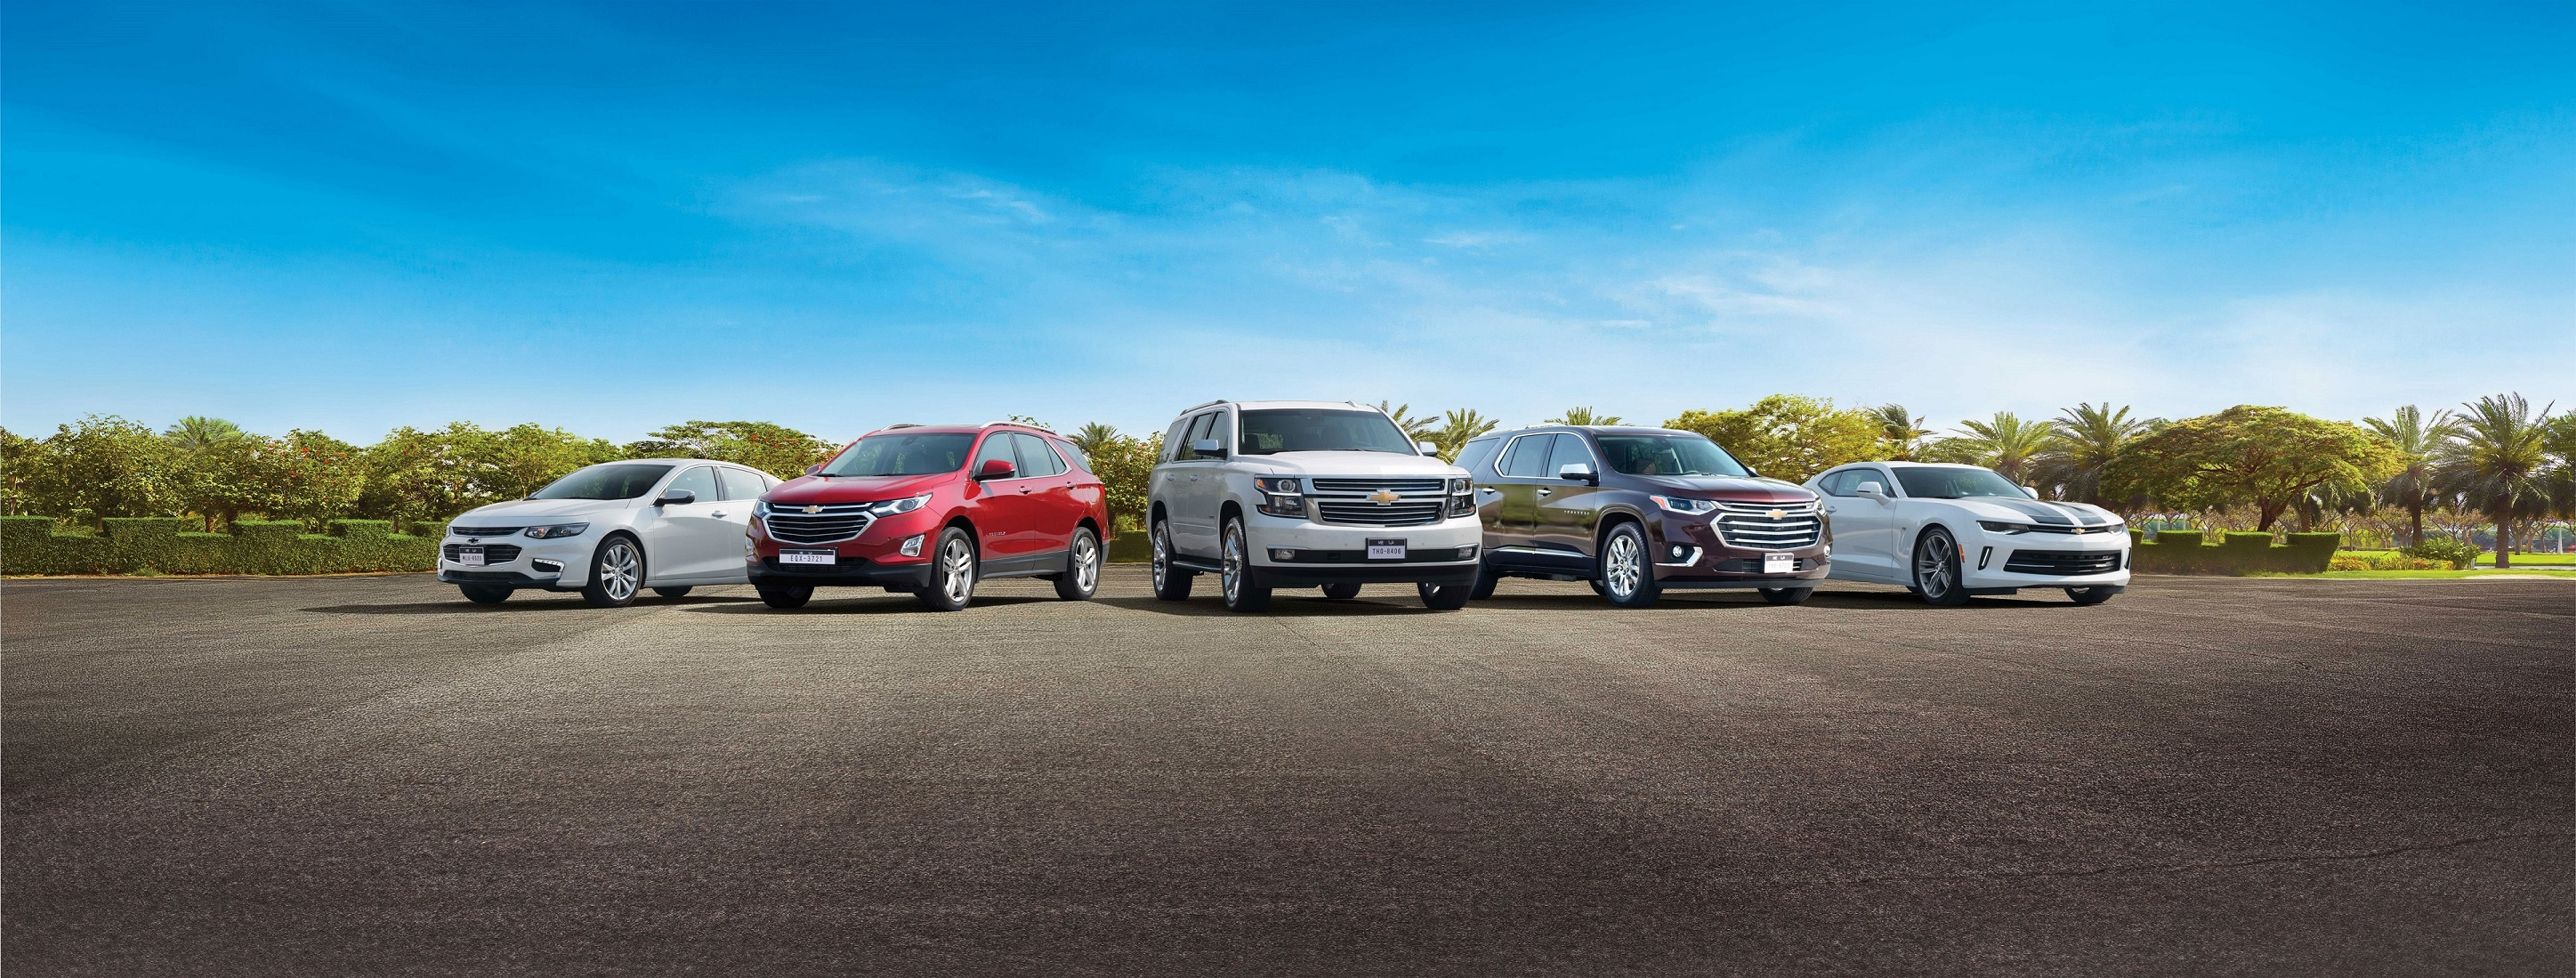 Chevy Is A Great Purchase And Here S Why Glendora Chevrolet